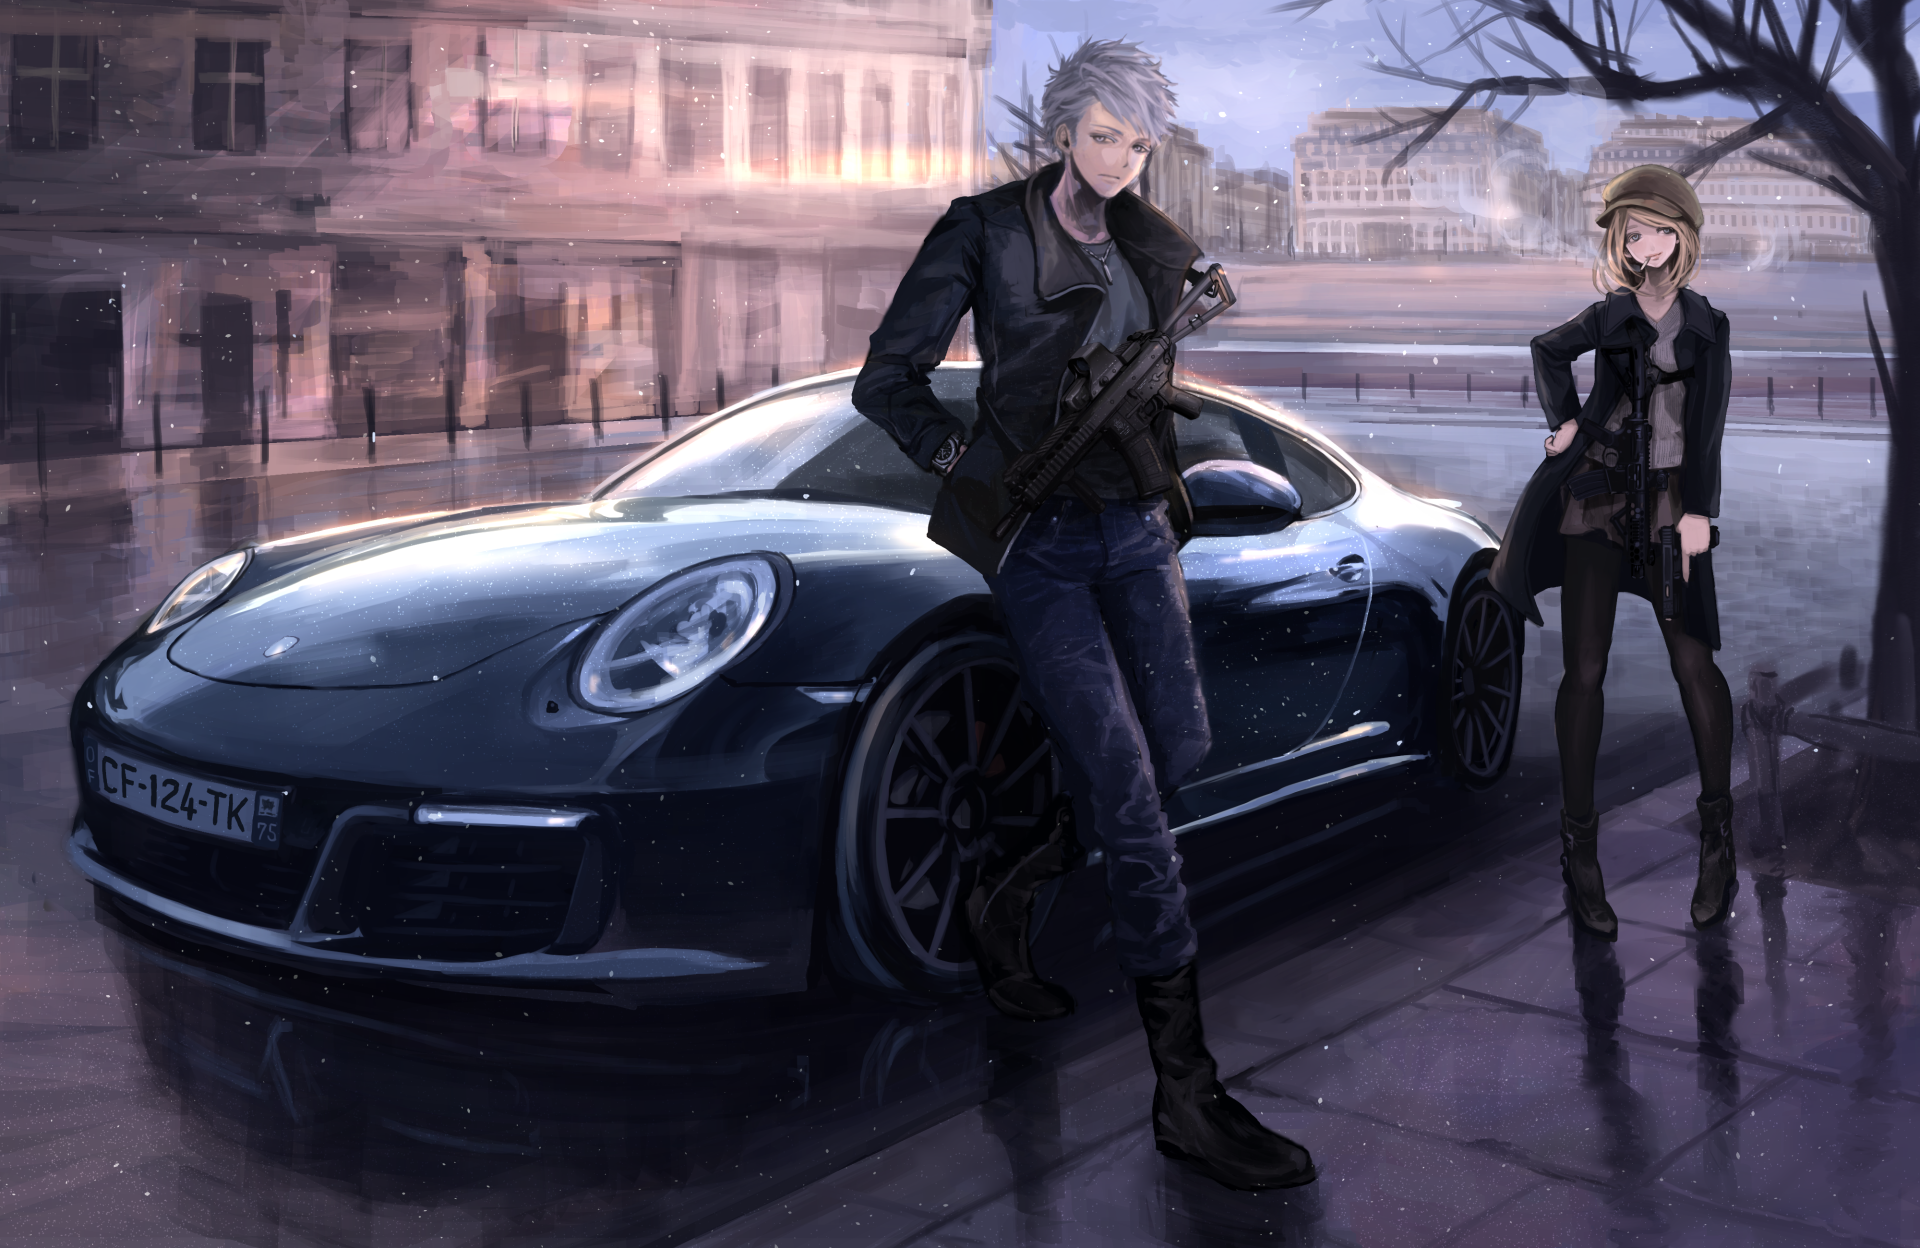 Anime - Original  Original (Anime) Anime Boy Girl Short Hair Blonde White Hair Car Gun Weapon Pantyhose Wallpaper